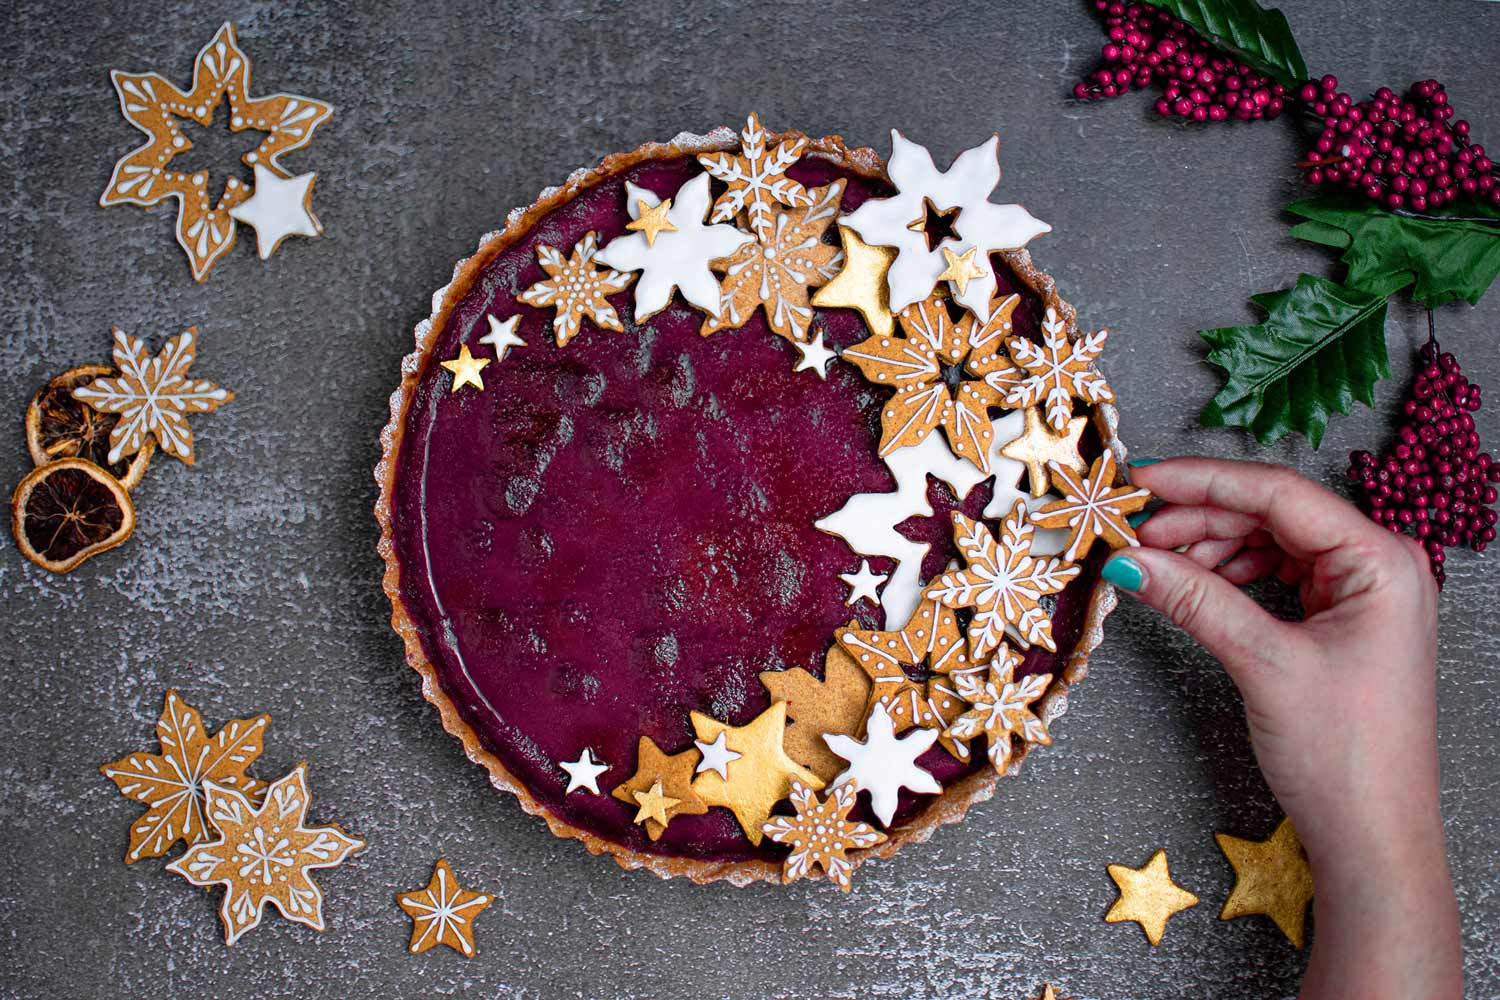 Hand decorating tart with snowflake cookies